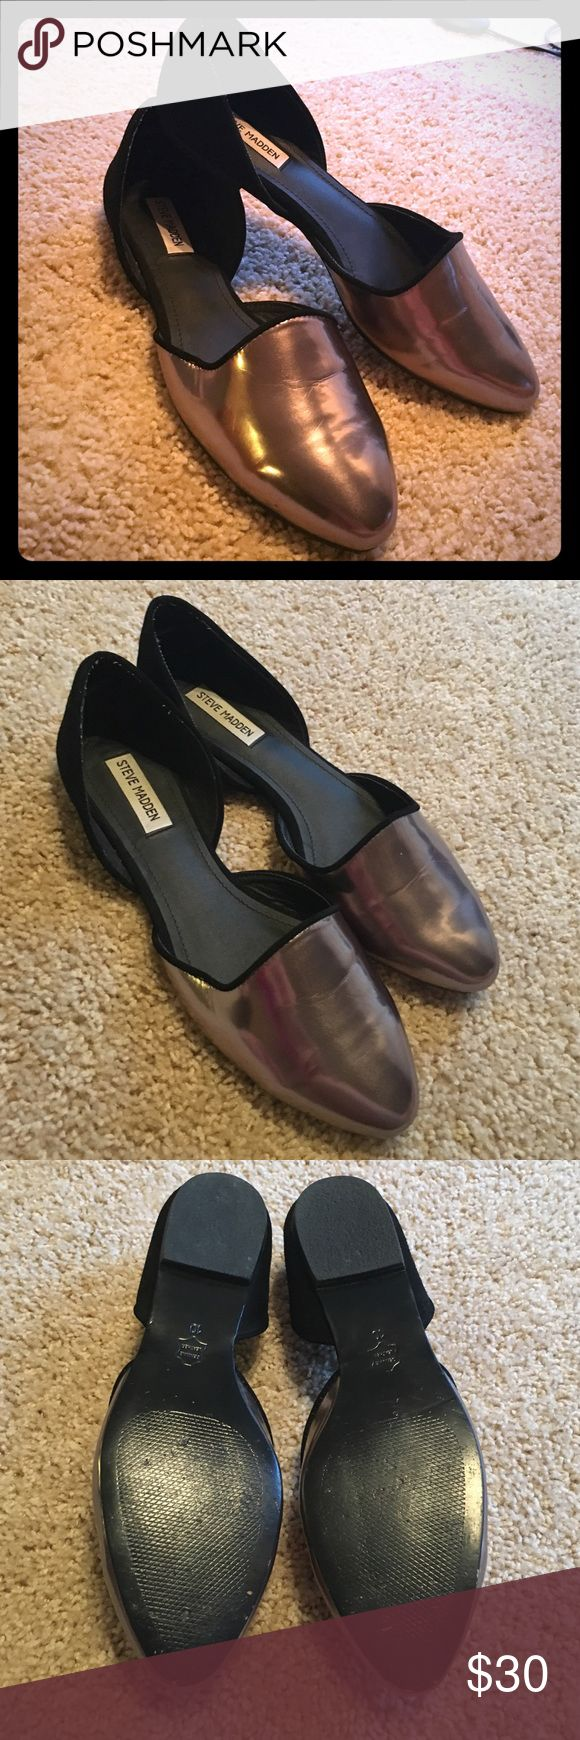 Steve Madden shoes Steve Madden metallic silver and black suede loafer.. only worn a handful of times.. the left shoe has a tiny white spec on it that would probably come off with the proper cleaning supply 🙂 very comfy and stylish! Steve Madden Shoes Flats & Loafers